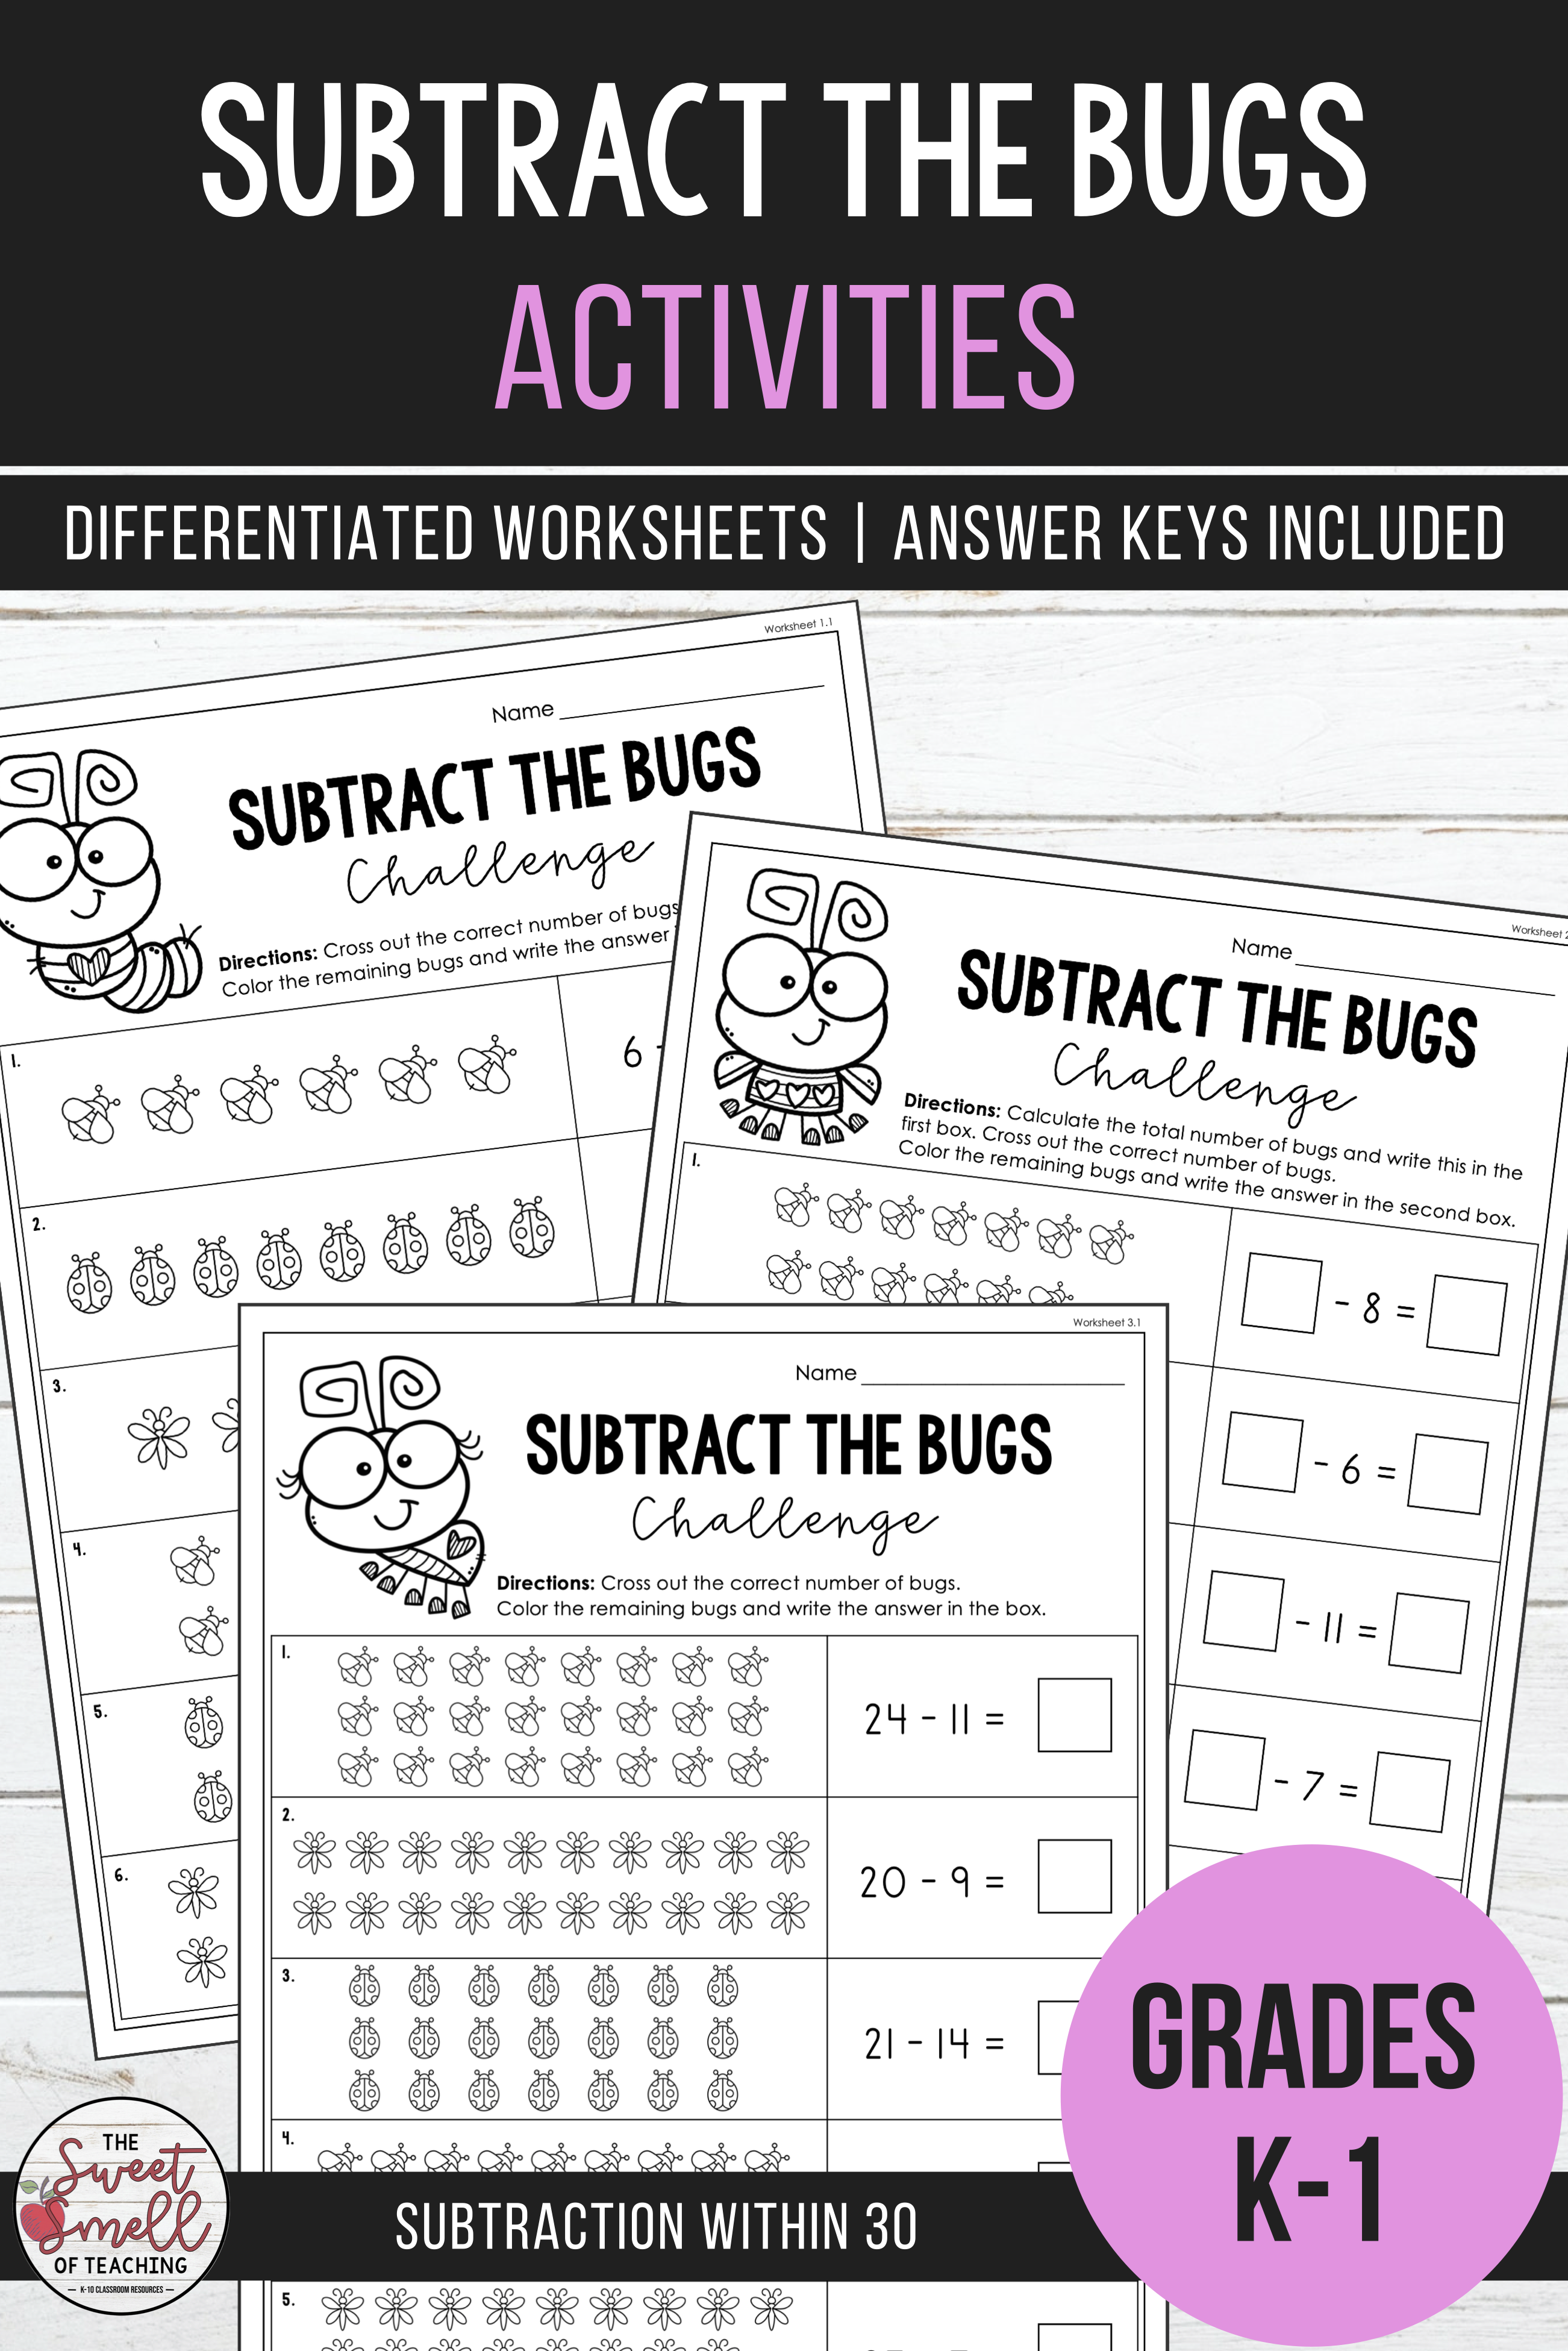 Subtraction Within 30 Subtract The Bugs Challenge Differentiated Worksheets Math Facts Math Fact Fluency Kindergarten Math Activities [ 3902 x 2603 Pixel ]